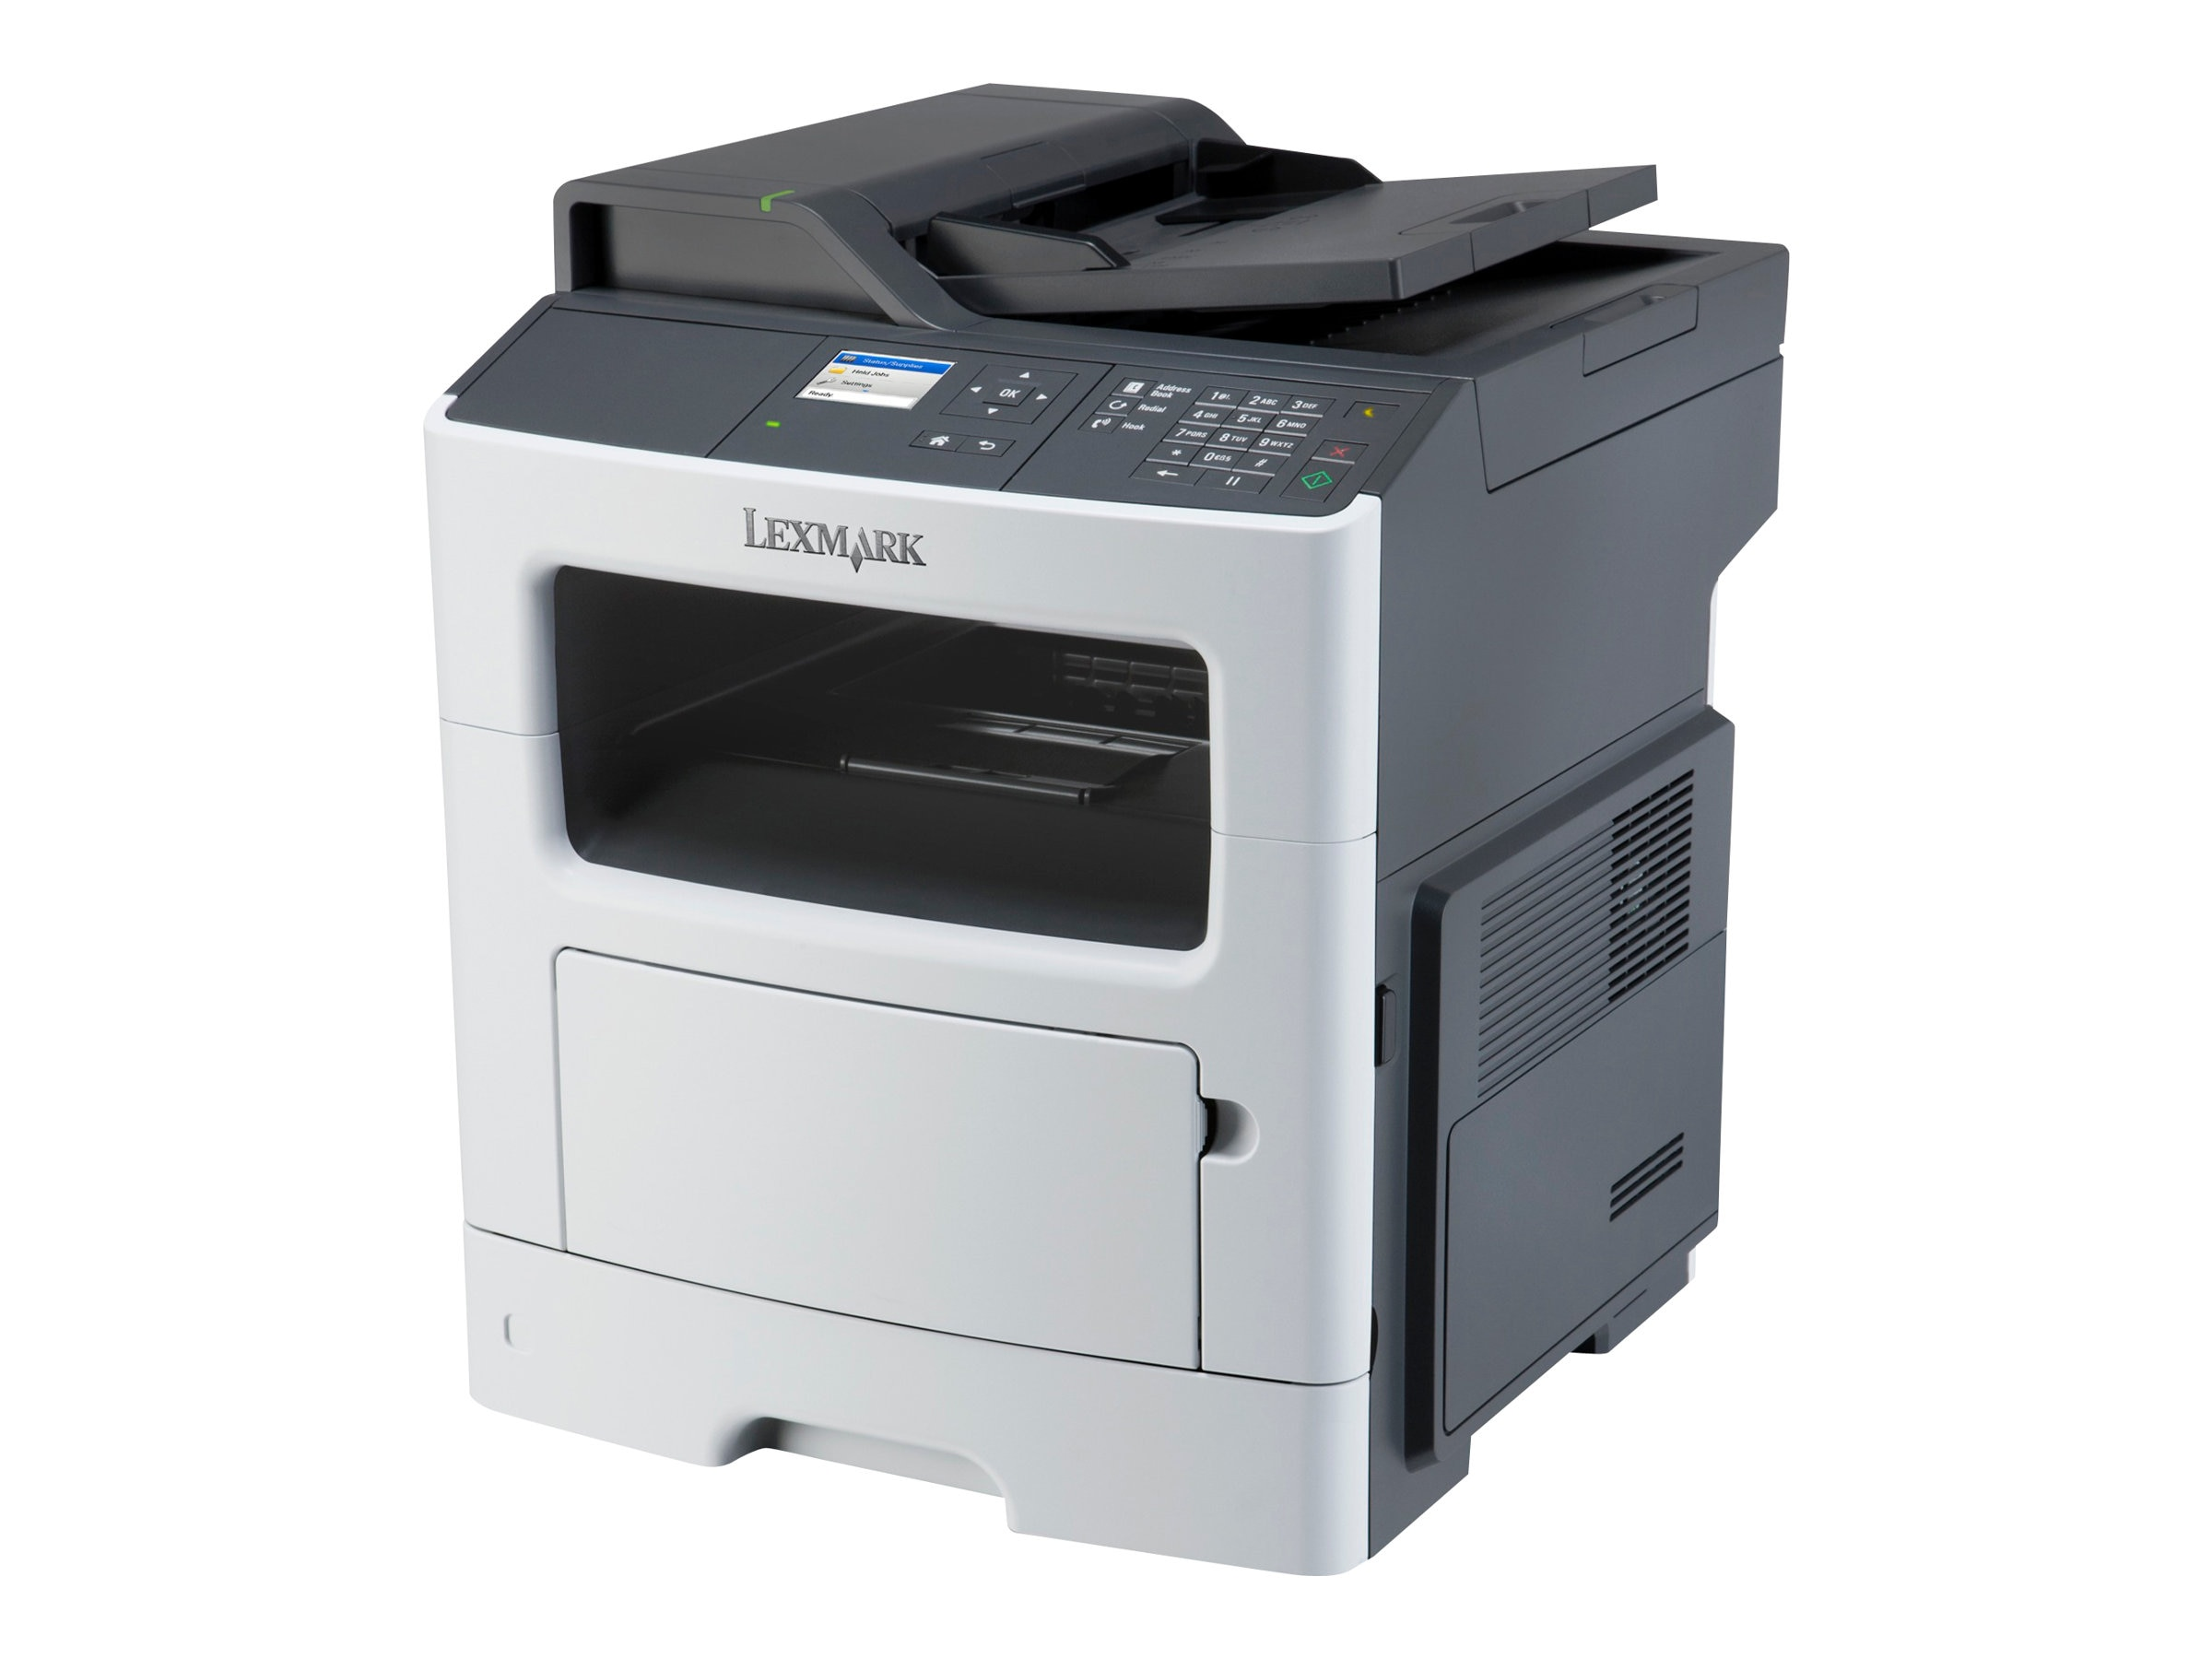 Lexmark MX310dn Monochrome Laser MFP ** Call us for exclusive pricing